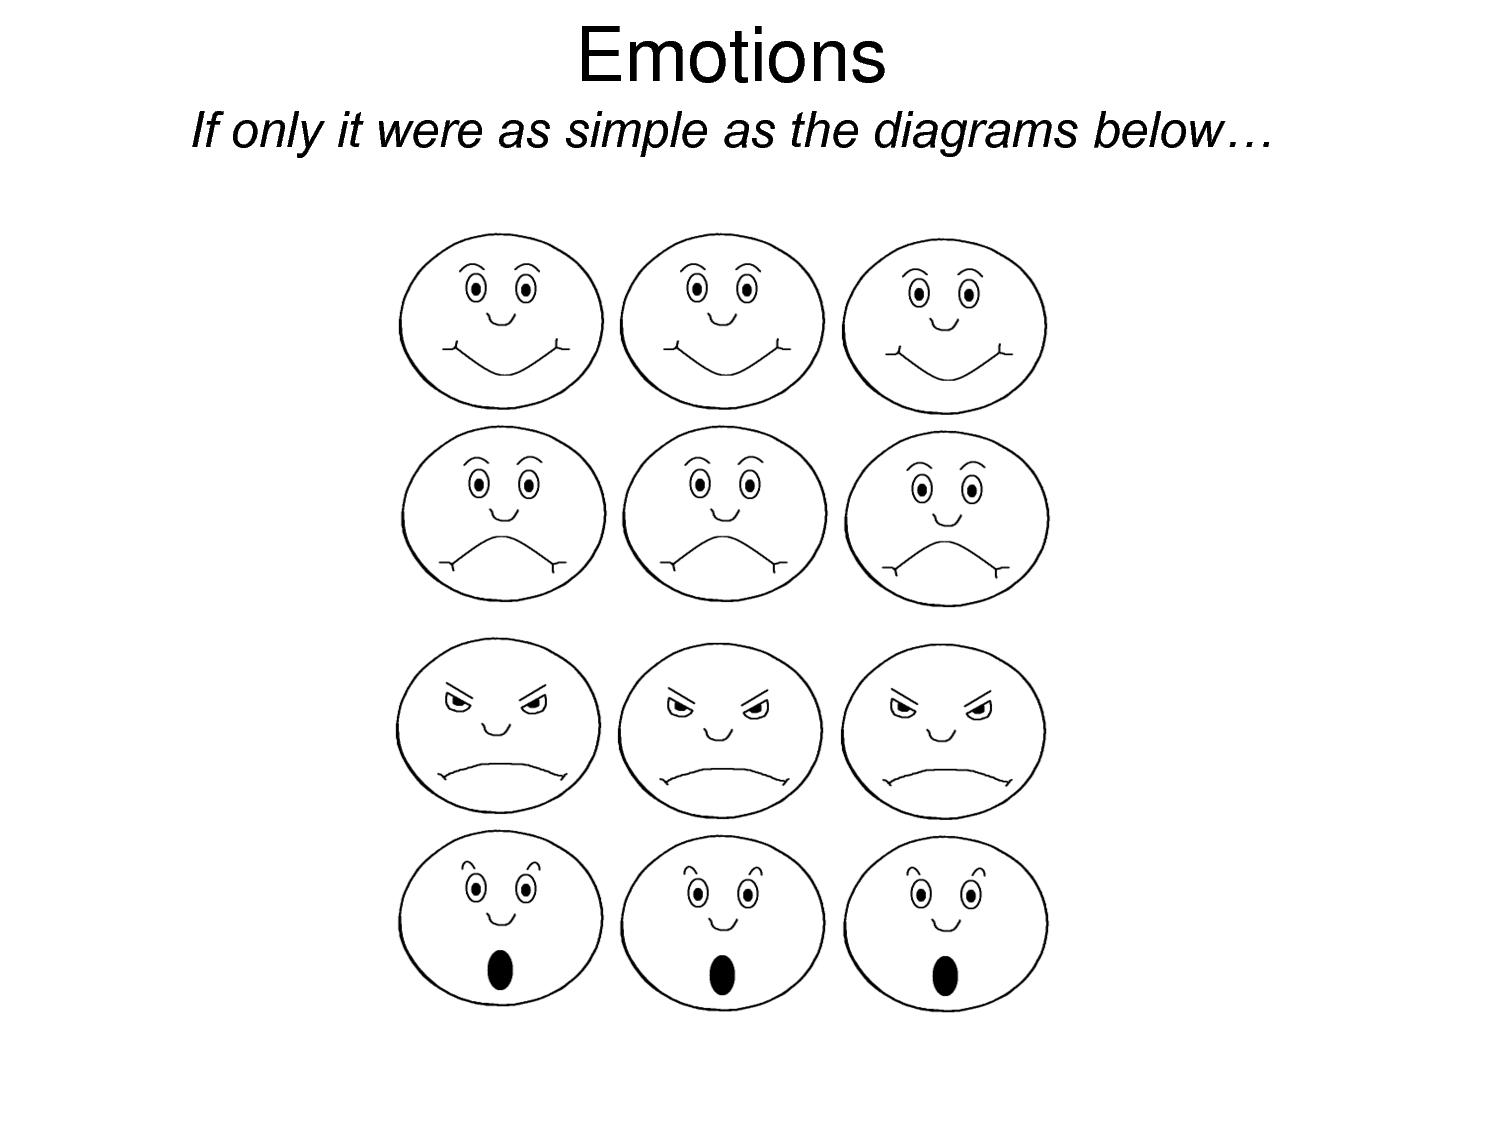 emotions coloring sheets - Denmar.impulsar.co